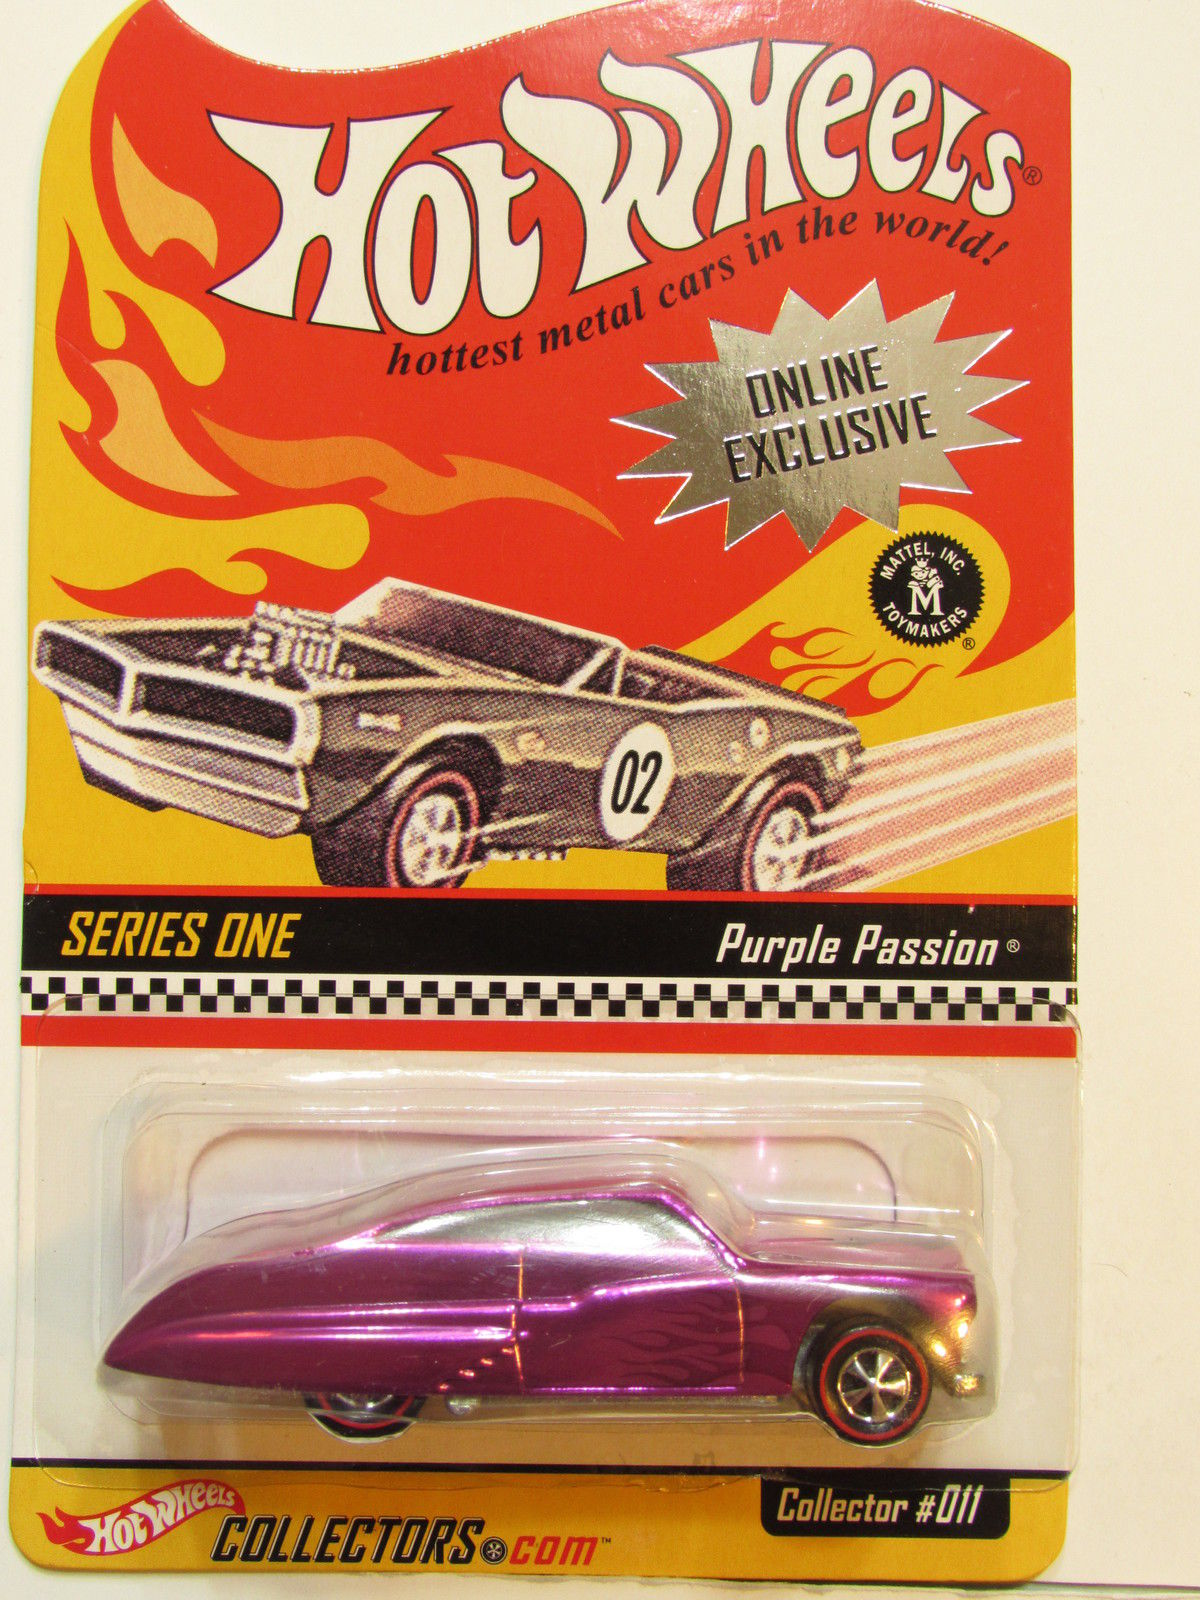 HOT WHEELS 2001 ONLINE EXCLUSIVE SERIES ONE COLLECTOR #011 PURPLE PASSION